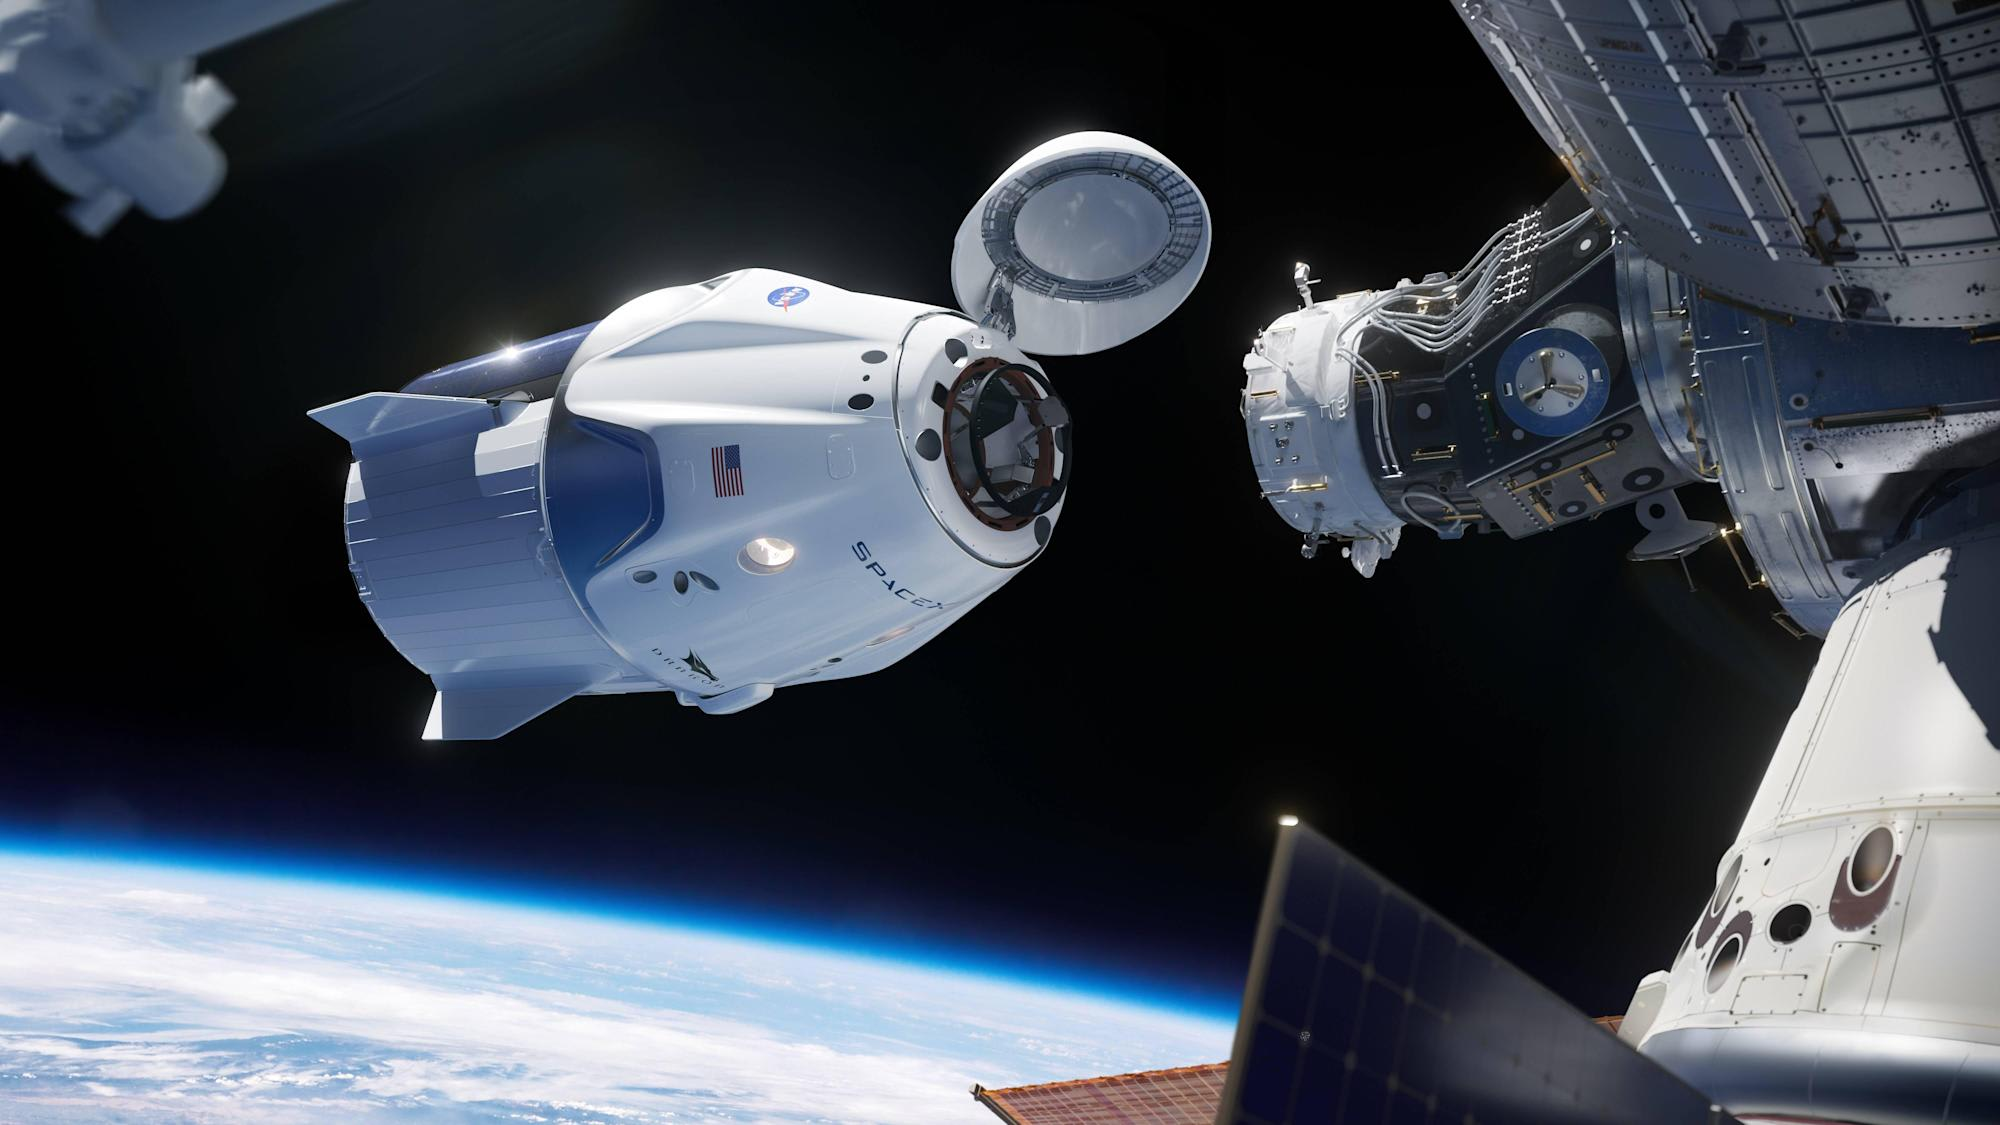 NASA can't let the Crew Dragon crew come home